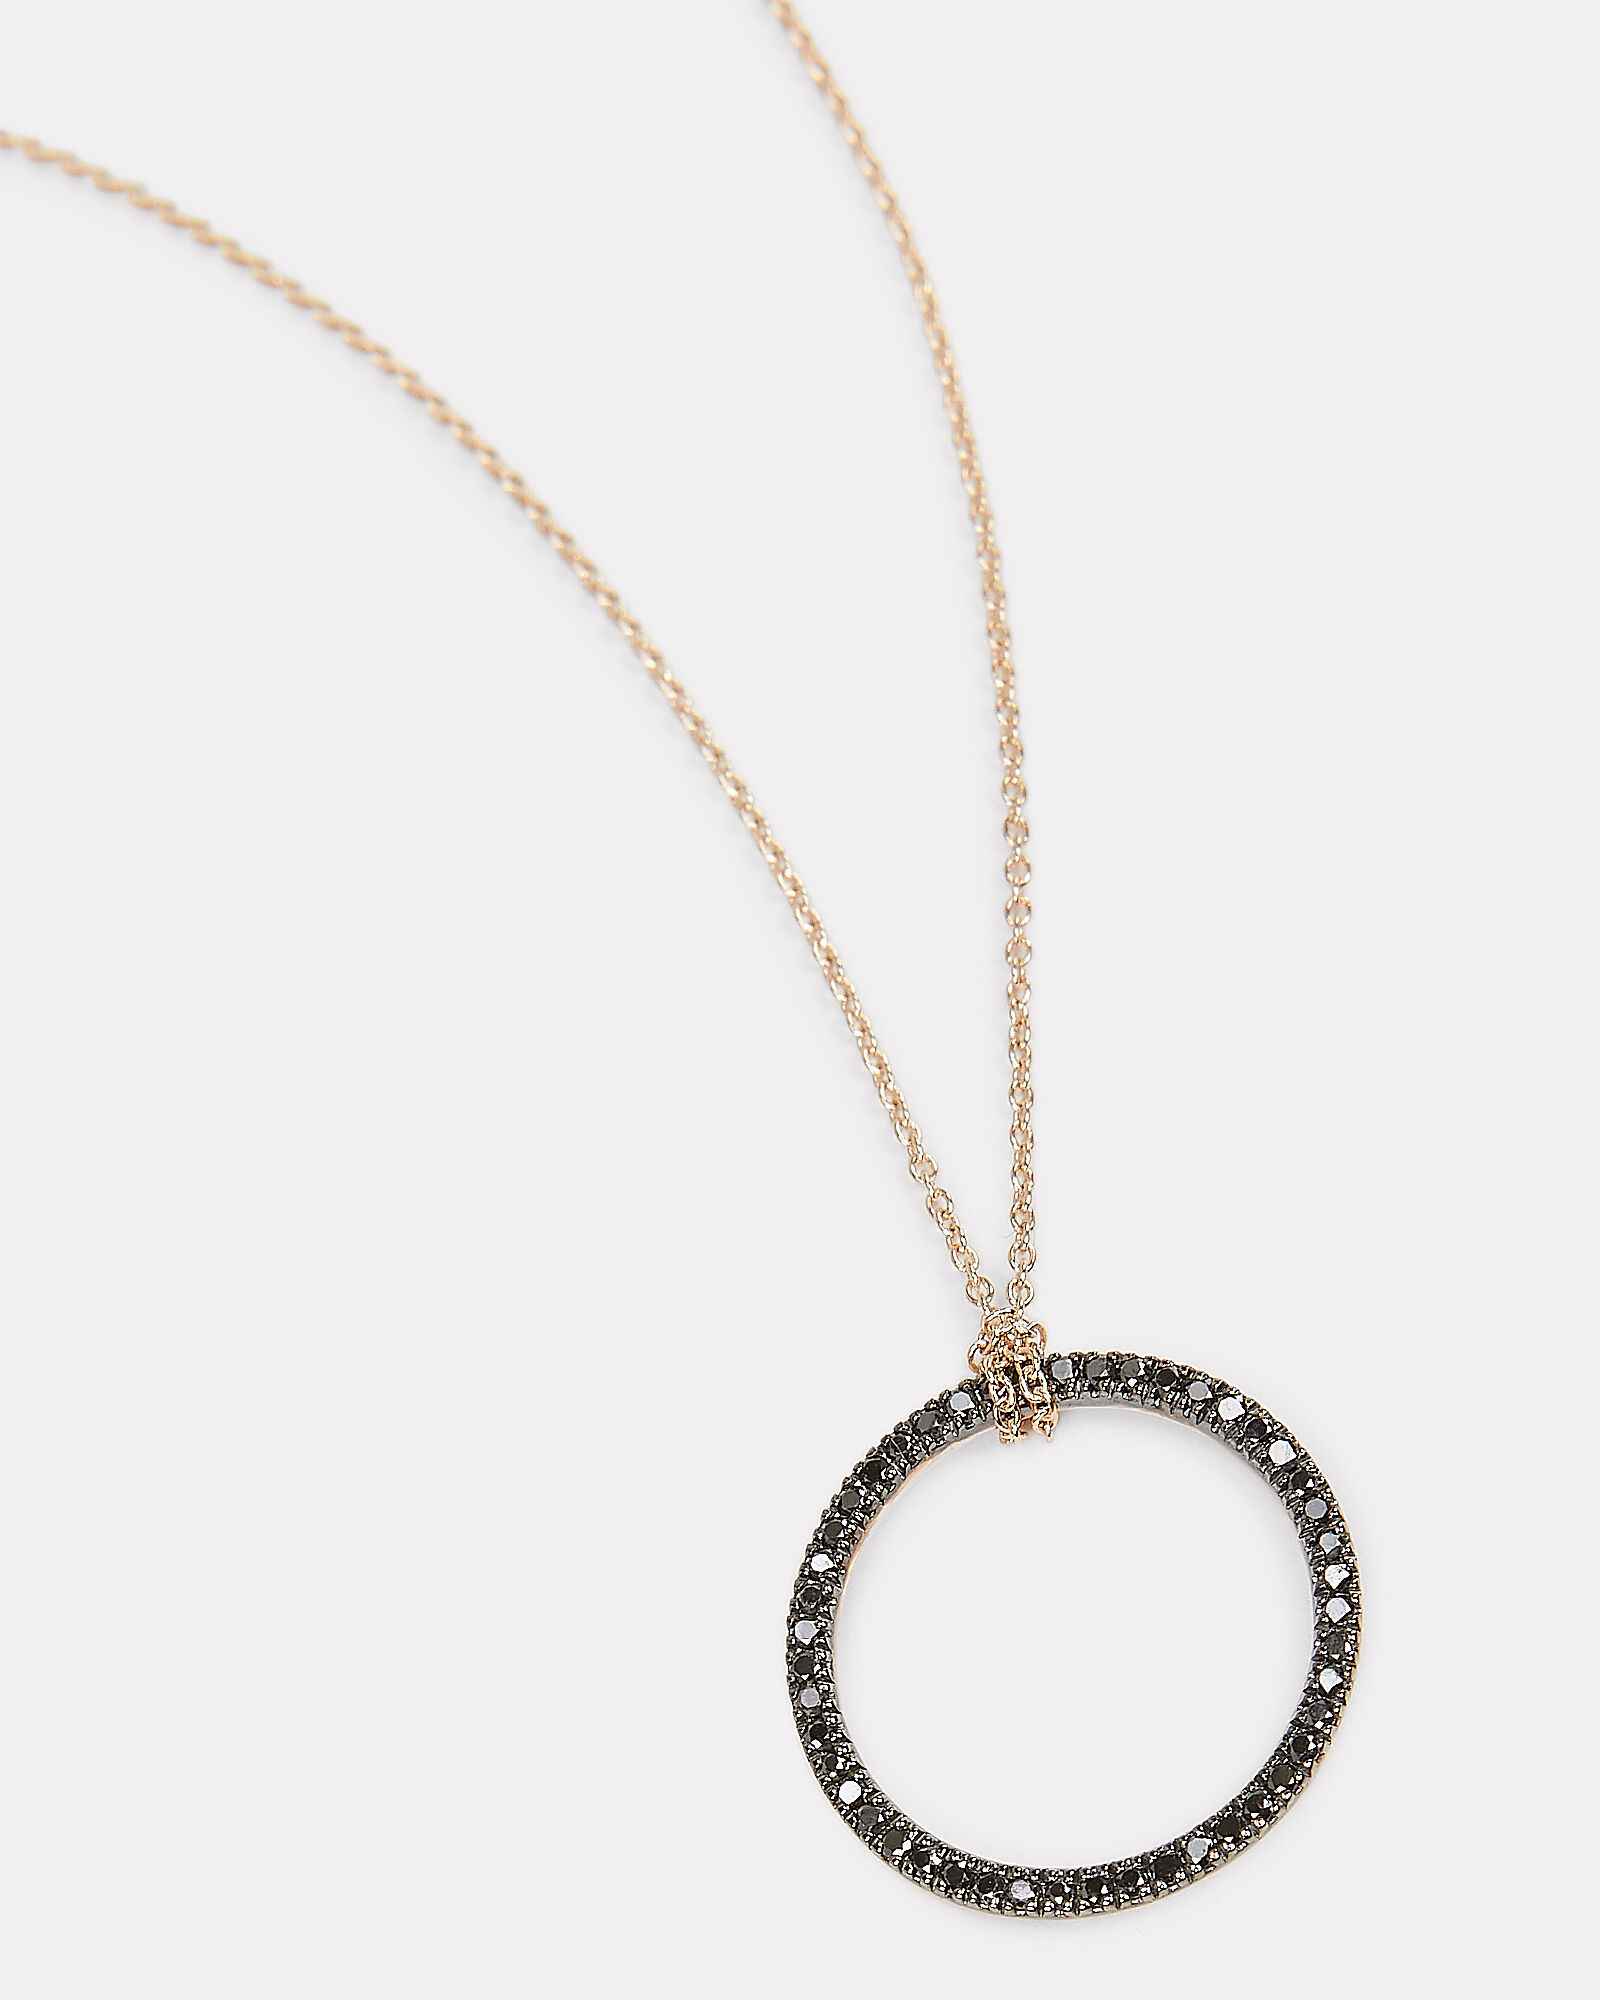 Black Diamond Pendant Necklace, ROSE GOLD/BLACK DIAMONDS, hi-res